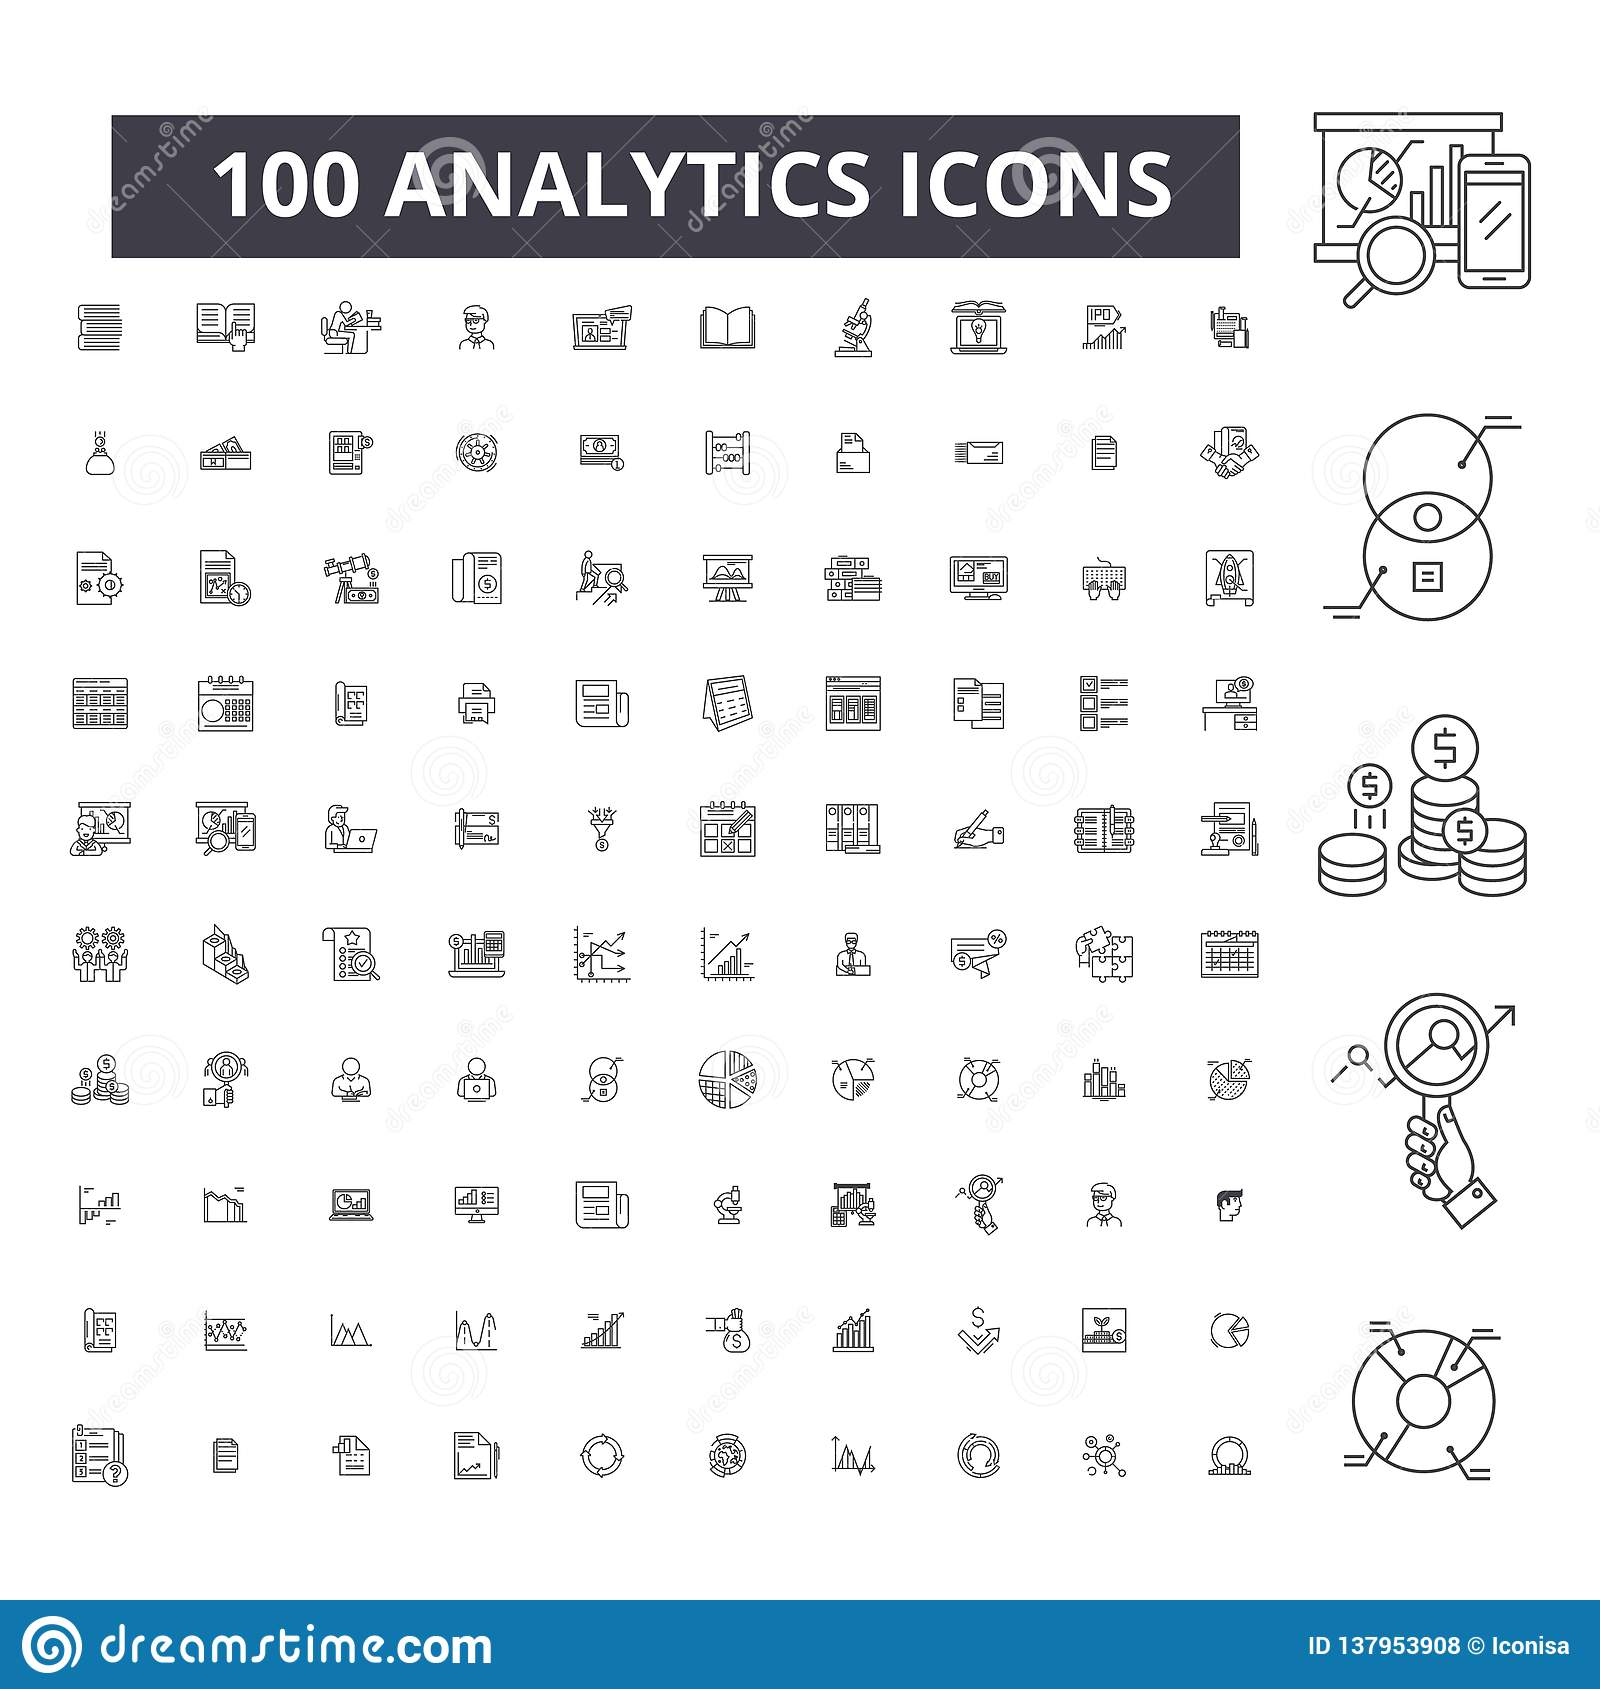 Analytics editable line icons, 100 vector set, collection. Analytics black outline illustrations, signs, symbols